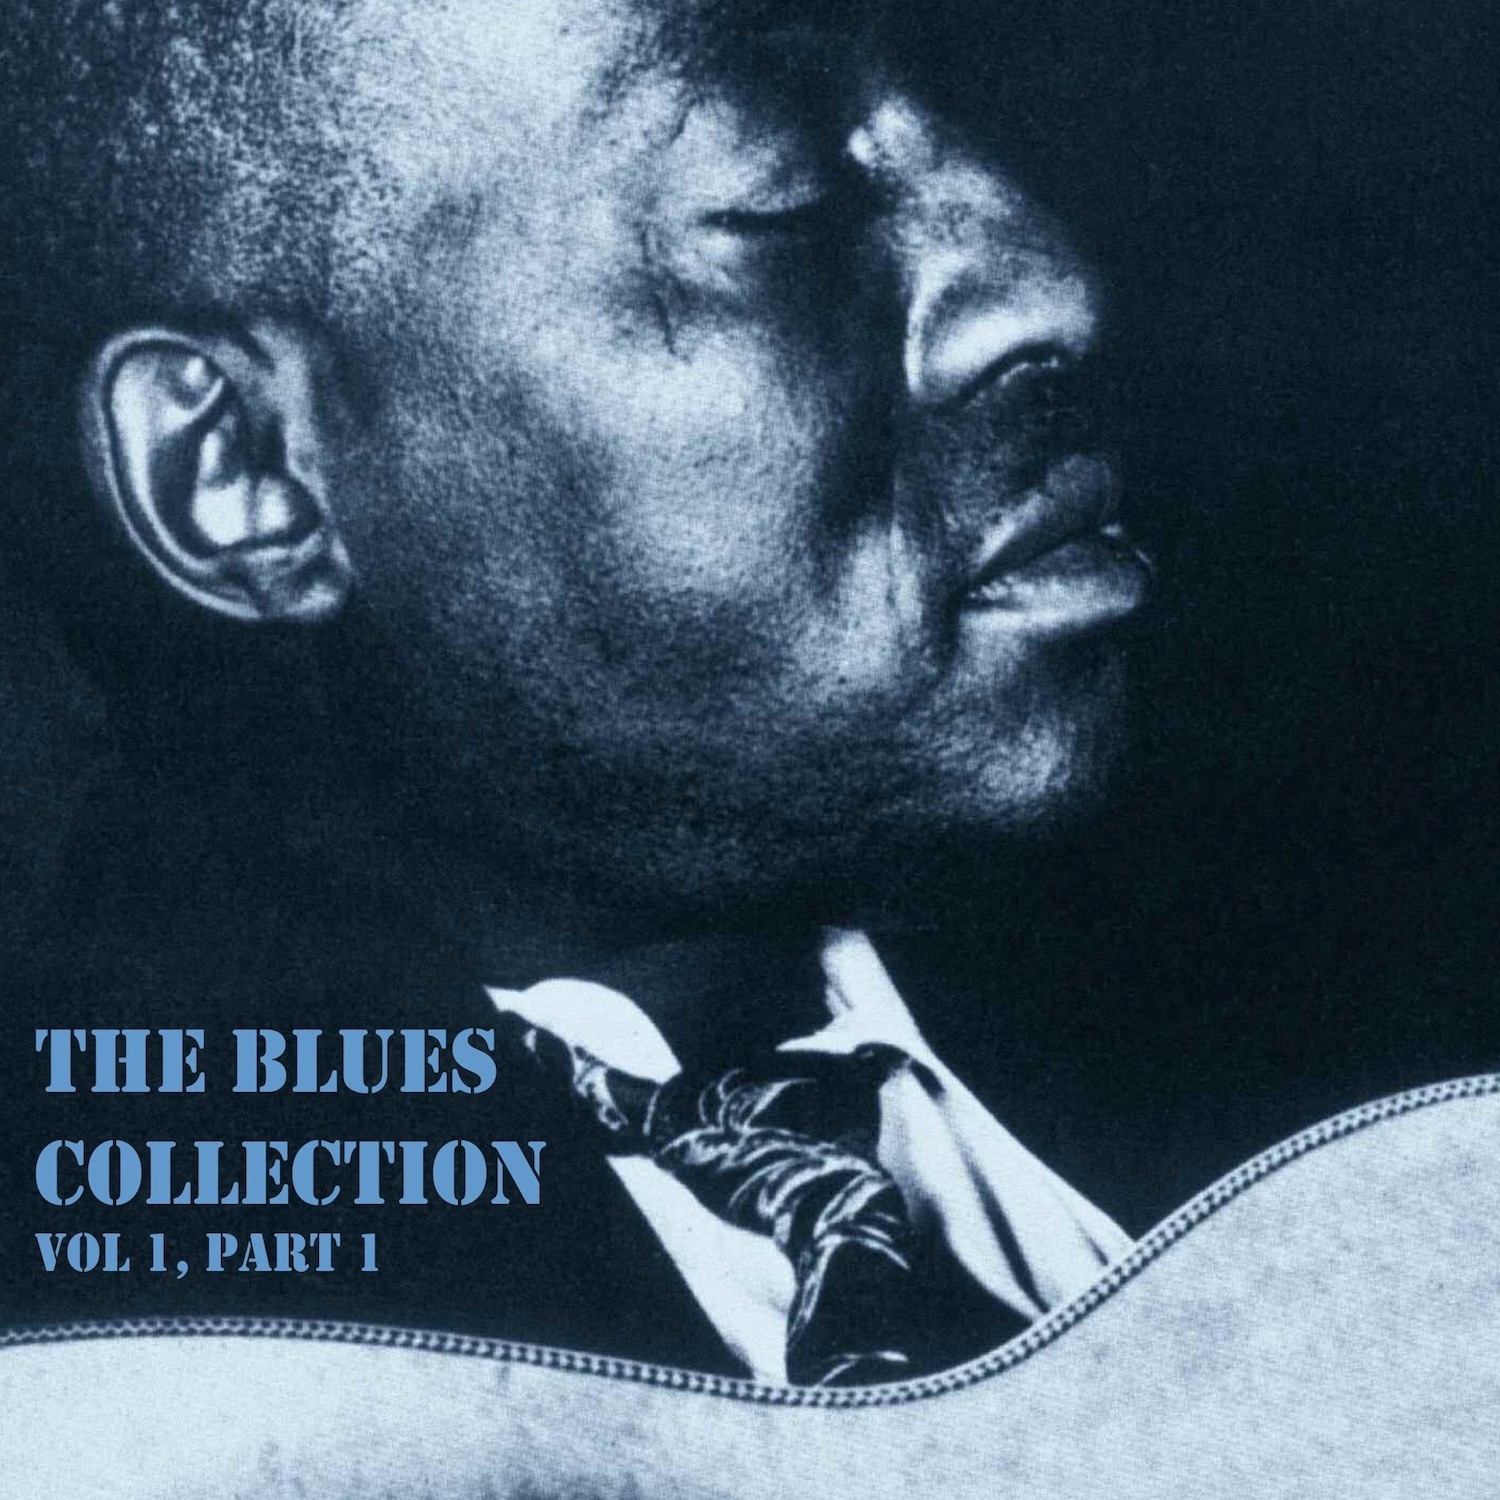 The Blues Collection Vol 1, Part 1